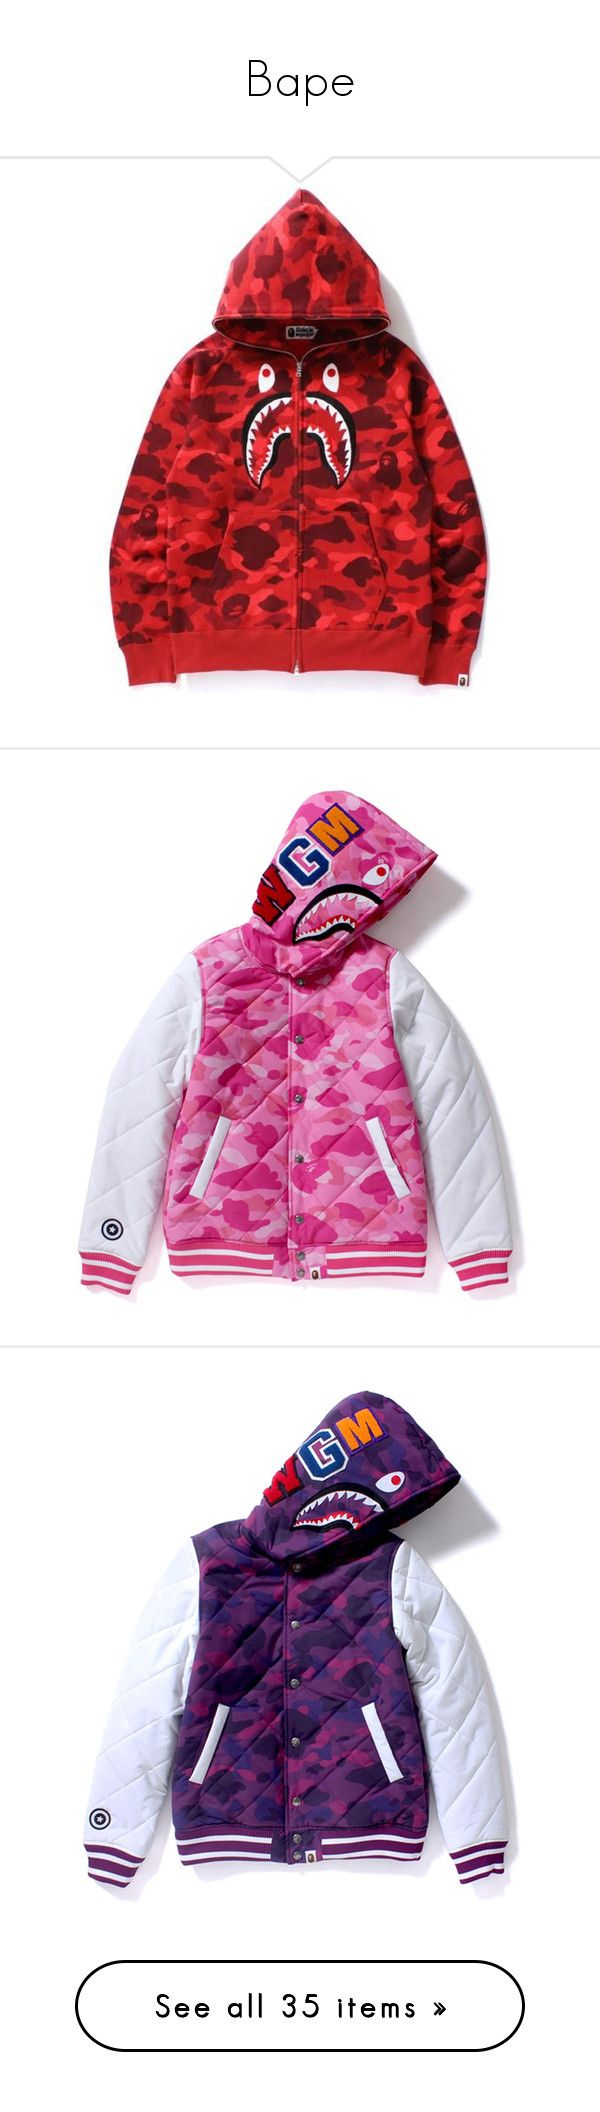 """Bape"" by sapringle ❤ liked on Polyvore featuring tops, hoodies, camouflage hoodies, camo hoodie, camouflage hoodie, red camo hoodie, full zip hoodies, hooded sweatshirt, pink camouflage hoodies and pink camo hoodie"